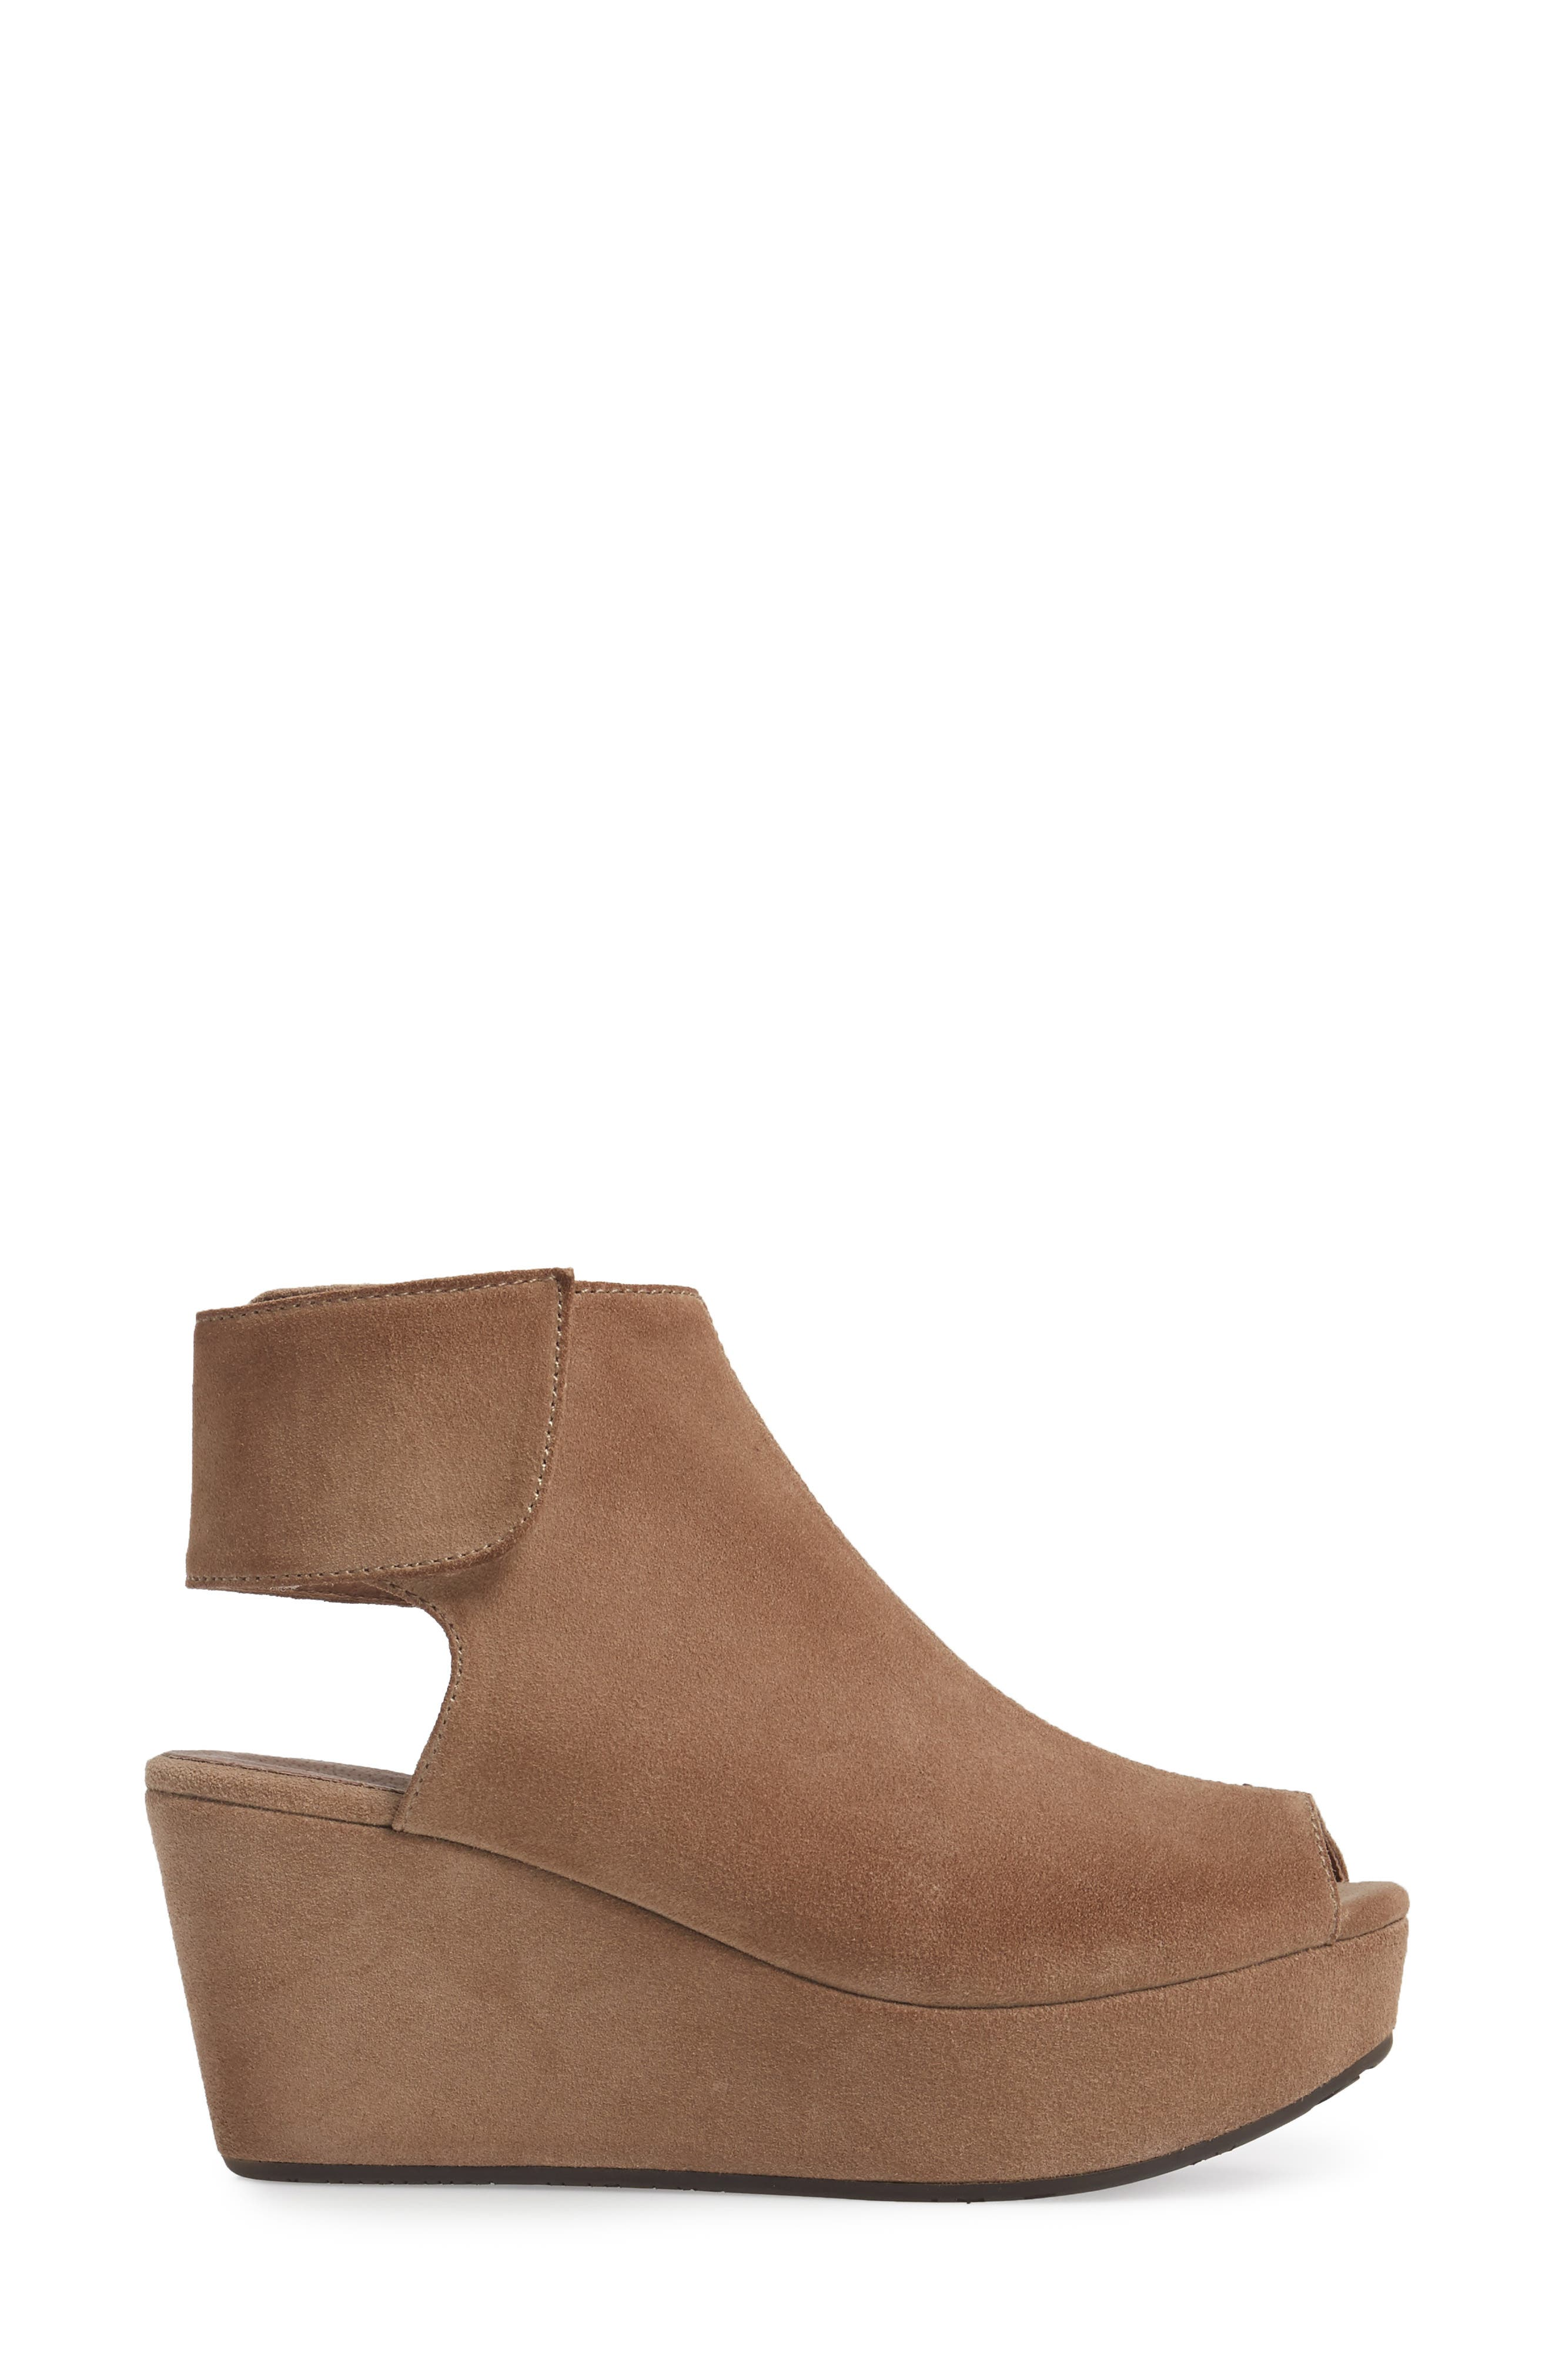 Cutout Wedge Sandal,                             Alternate thumbnail 3, color,                             Taupe Suede